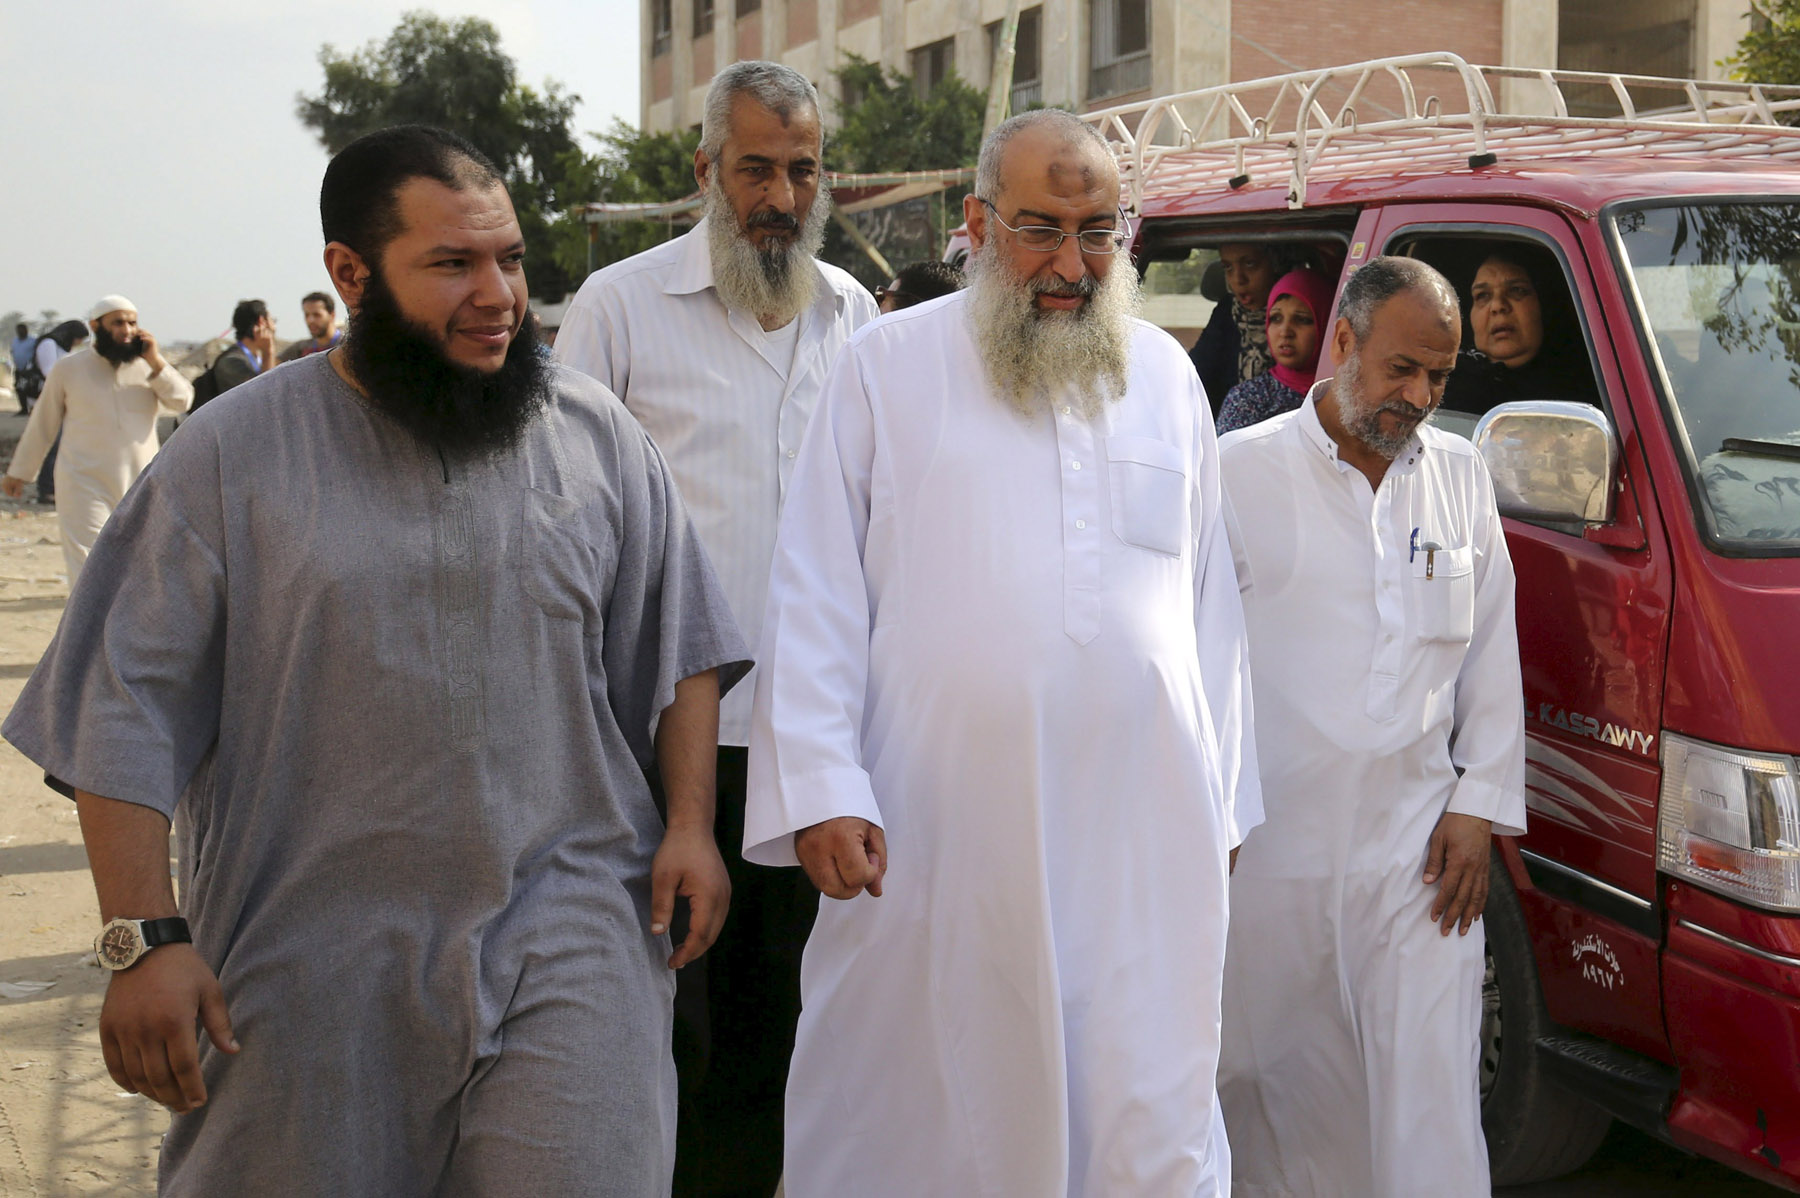 Yasser Borhami (C), deputy head of the Salafist Call, walks with his supporters in Alexandria. (Reuters)